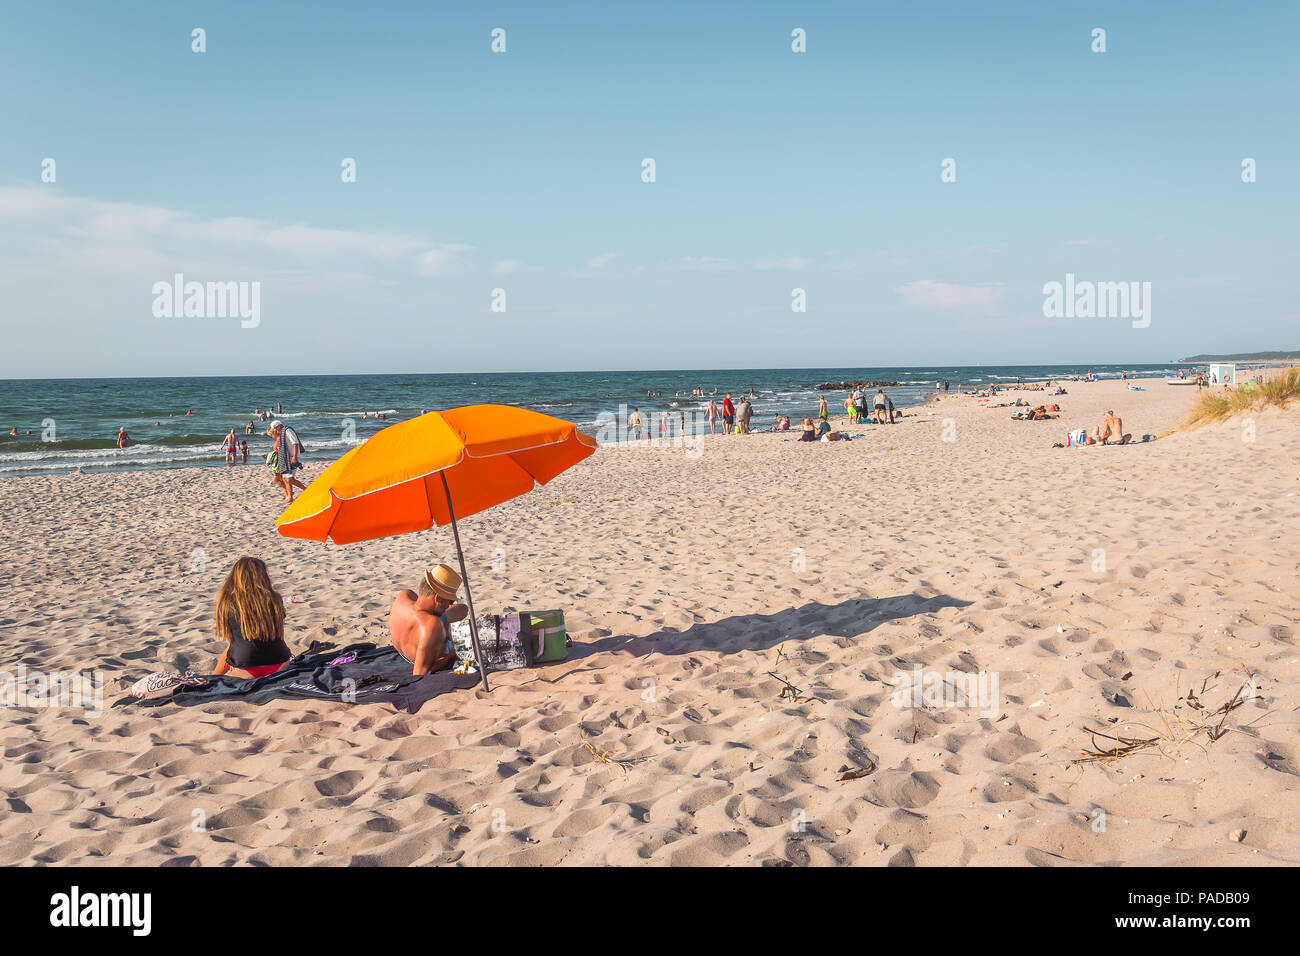 Man and woman sitting on a blanket under an orange umbrella on the beach in the afternoon sunshine, Rorvig, Denmark, July 16, 2018 - Stock Image